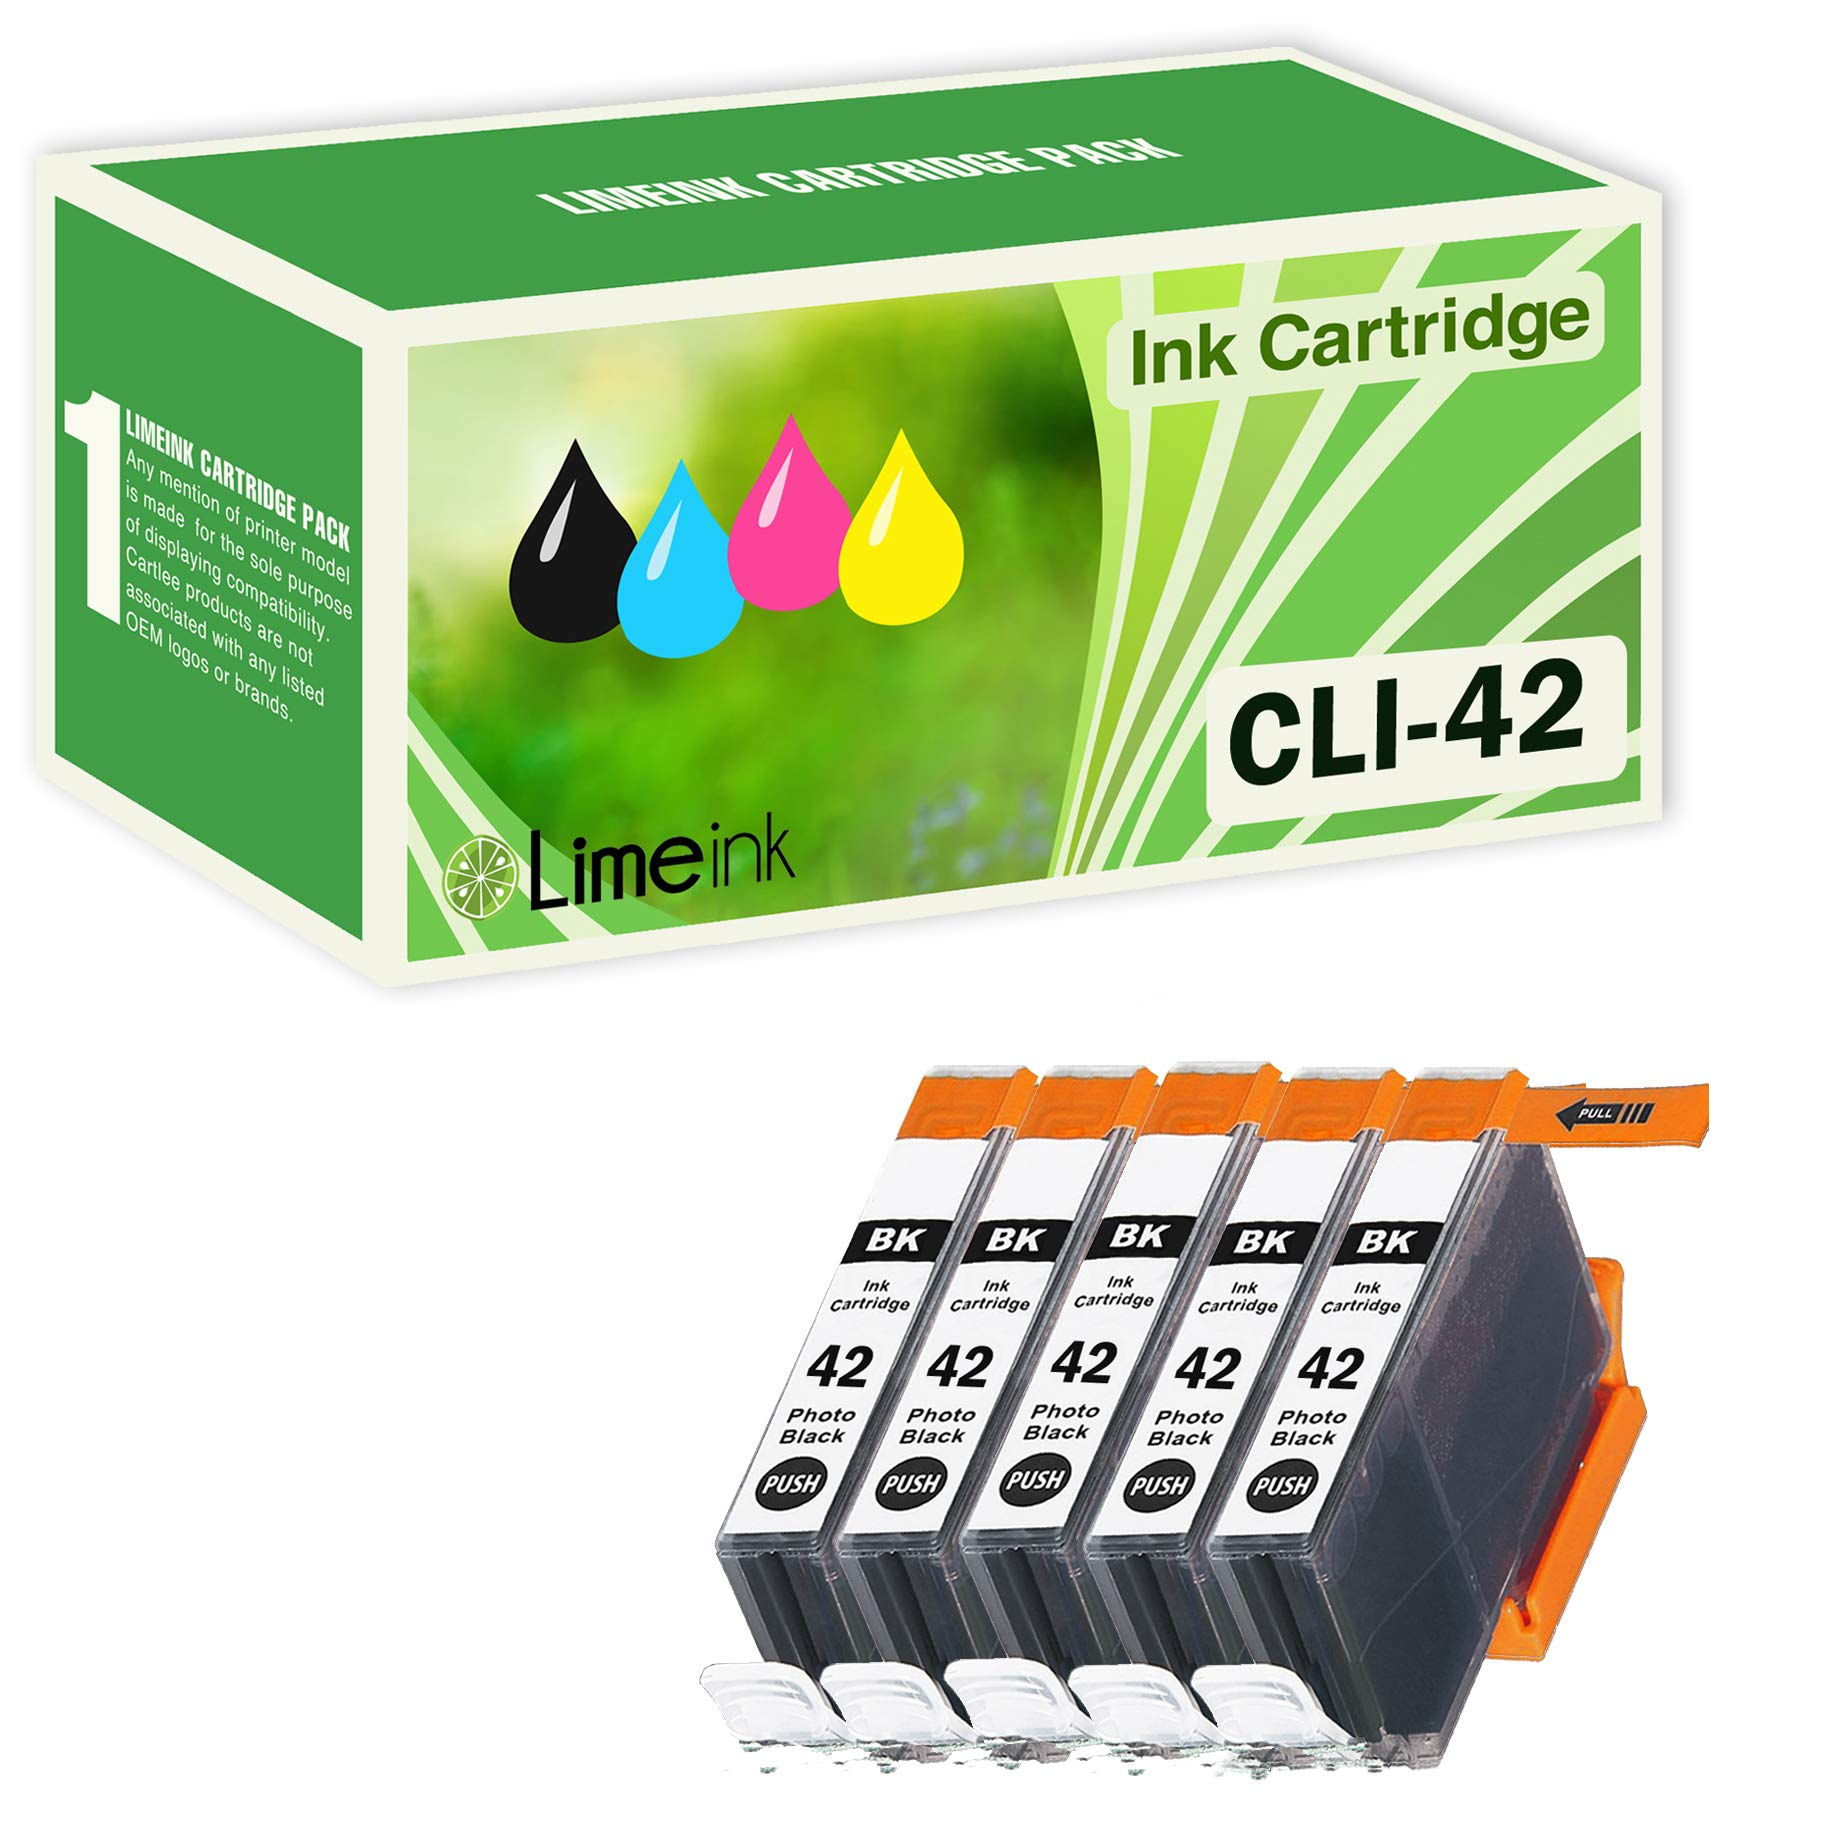 Limeink 5 Black Compatible High Yield Ink Cartridges Replacement for CLI-42 for Canon PIXMA PRO-100 100 100S CLI 42 Pro100